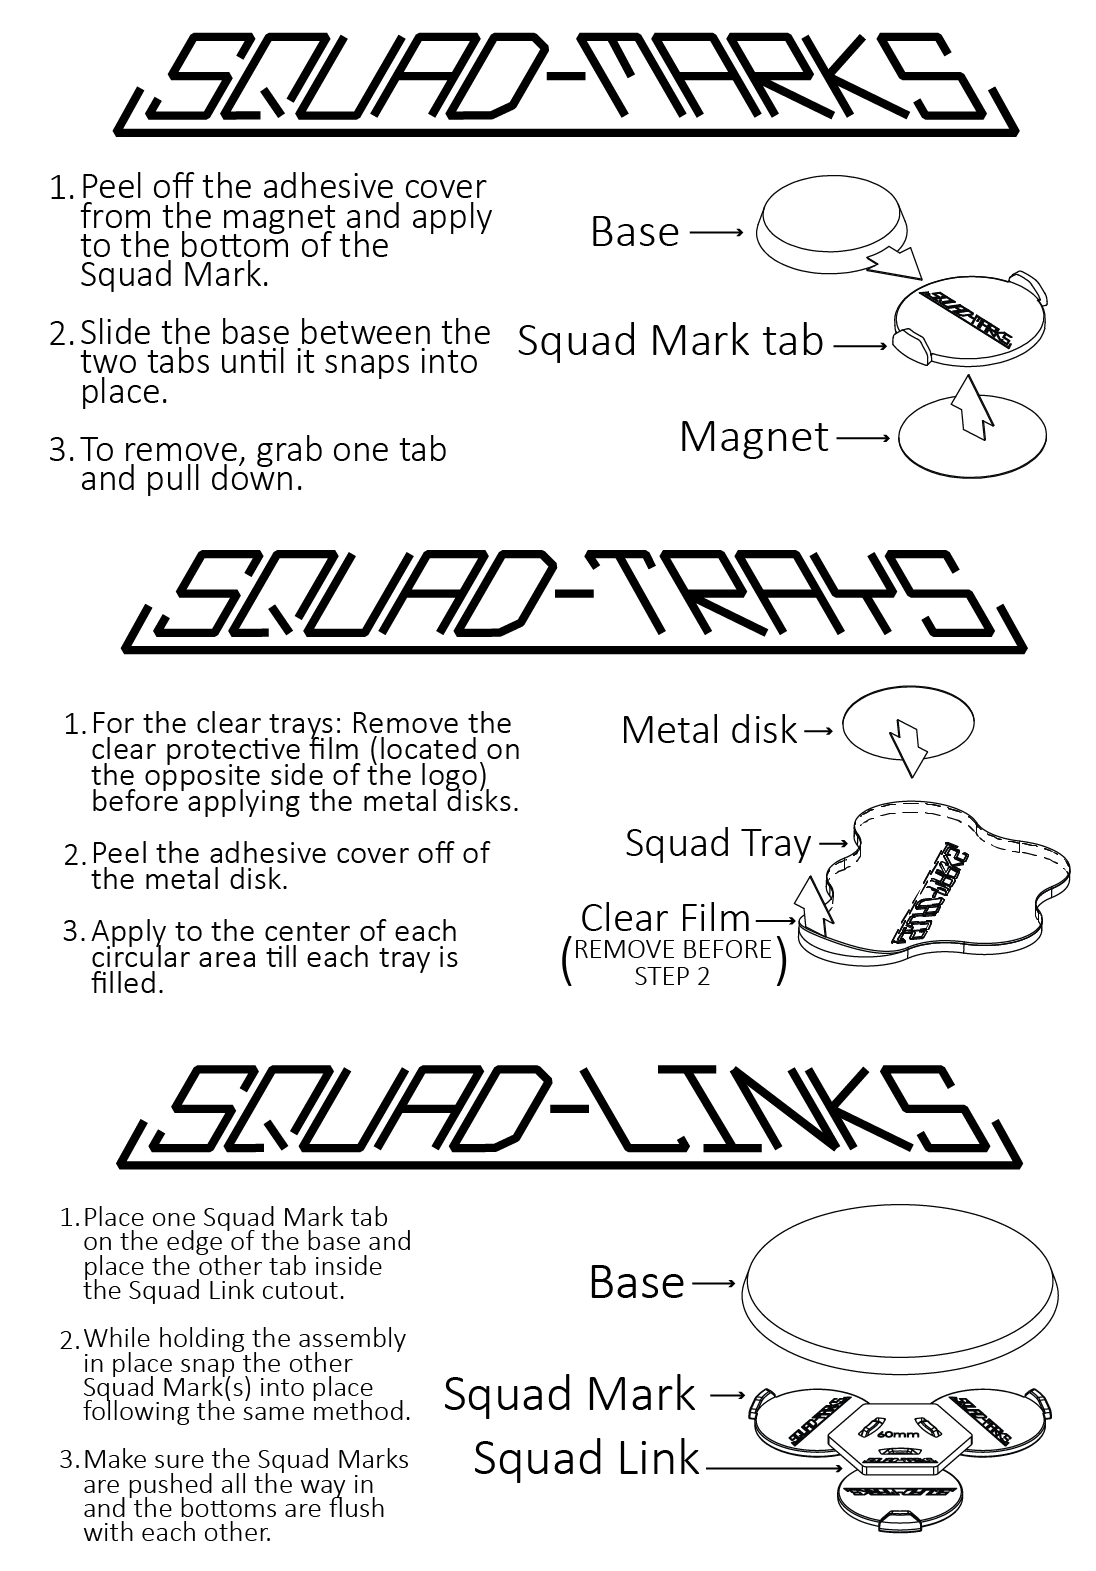 how-to-instructions-03.png